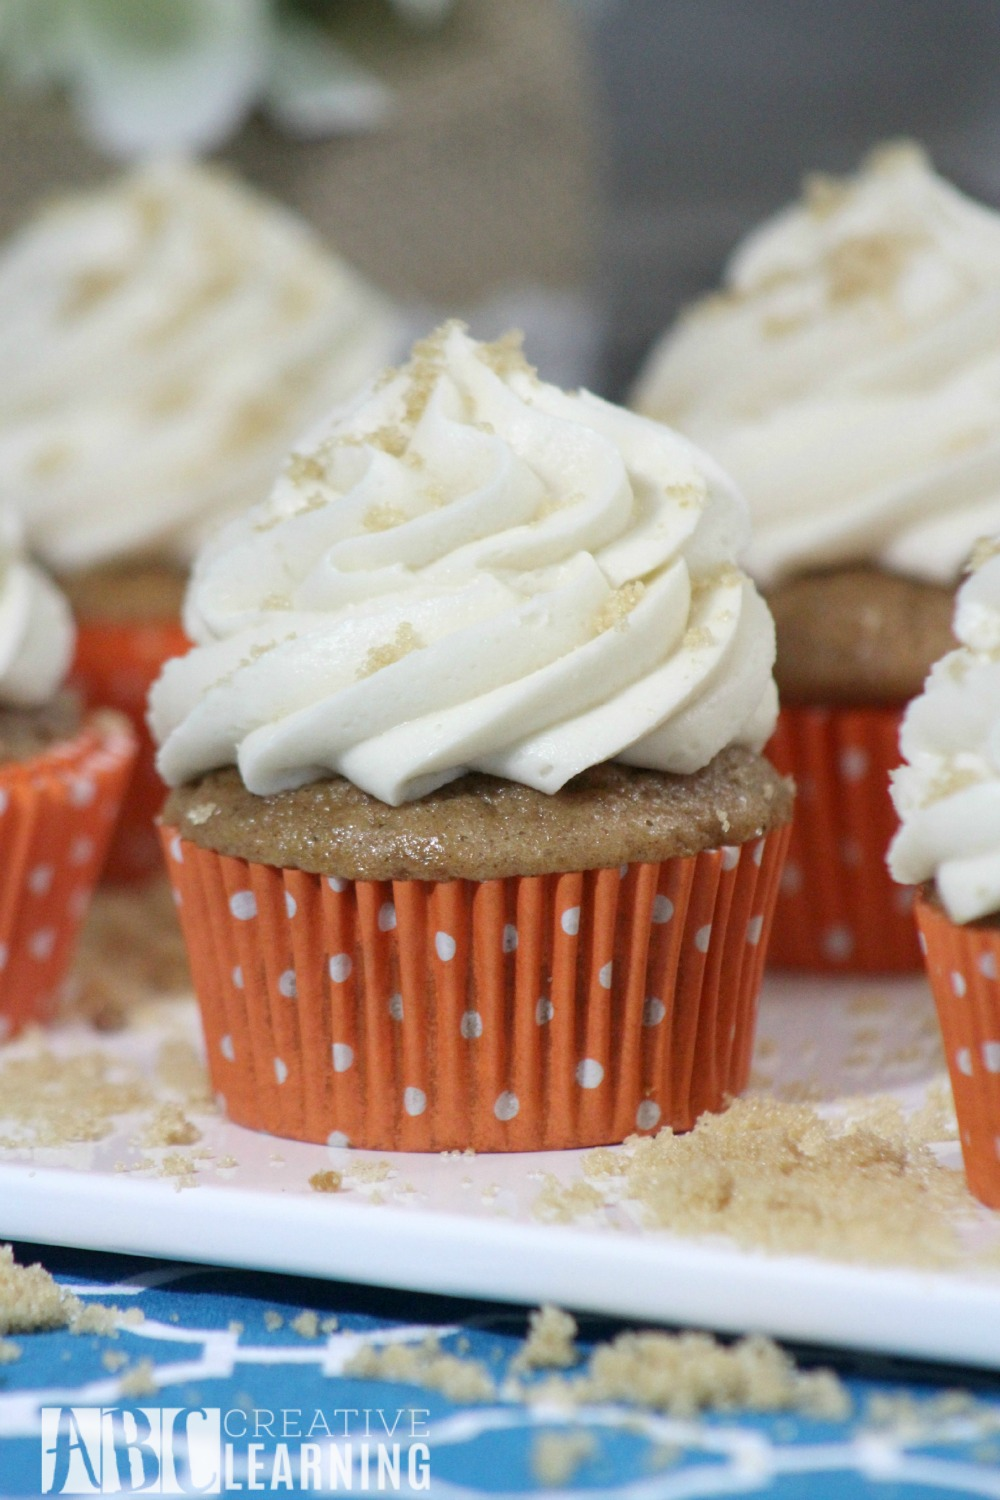 Classic Carrot Cupcake Recipe with Maple Frosting 3